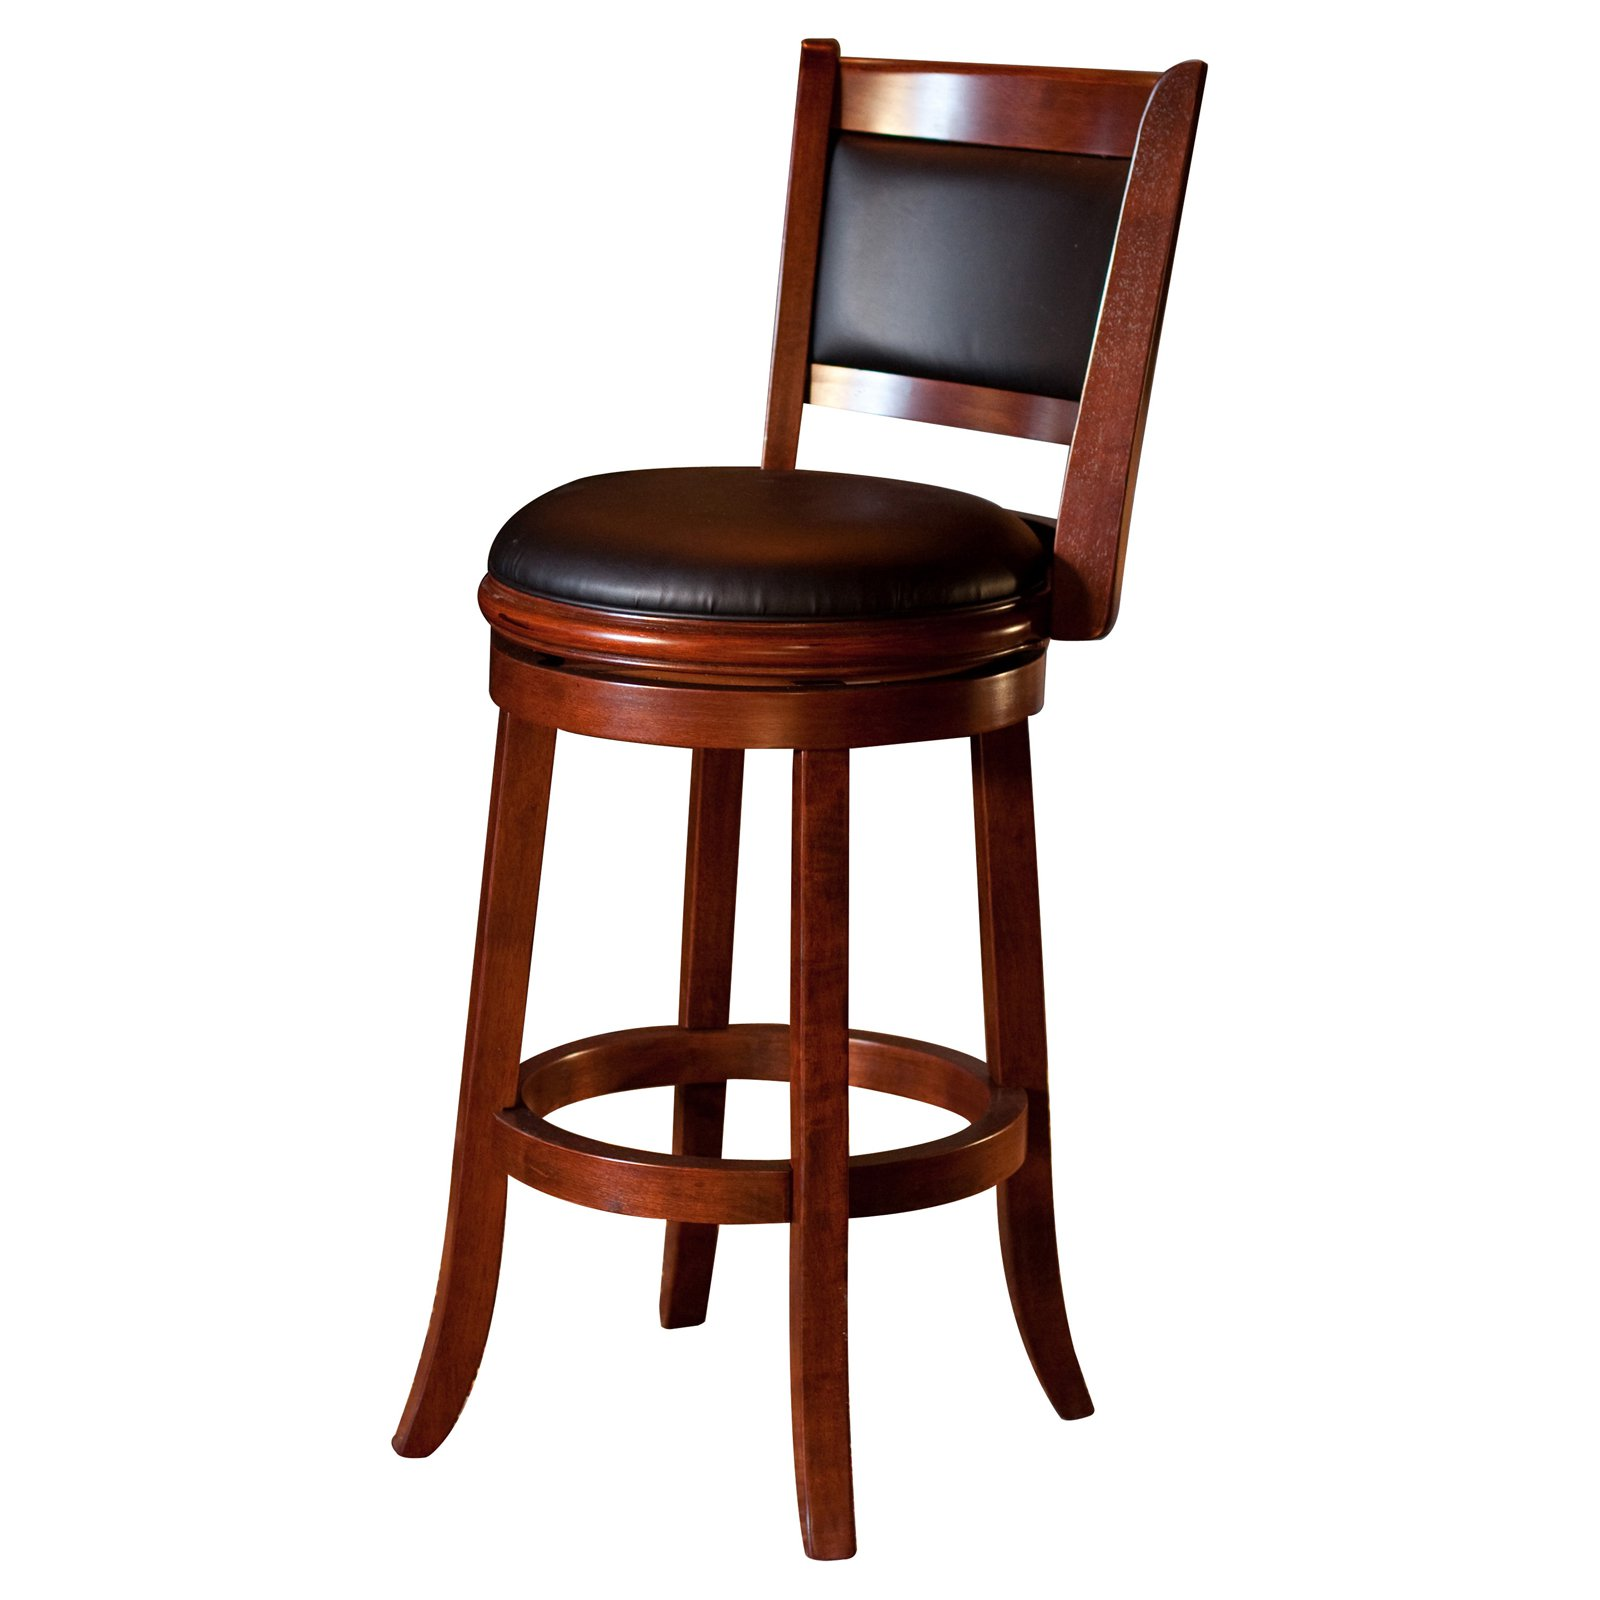 Tremendous Boraam Augusta 29 In Swivel Bar Stool Cherry Products In Machost Co Dining Chair Design Ideas Machostcouk